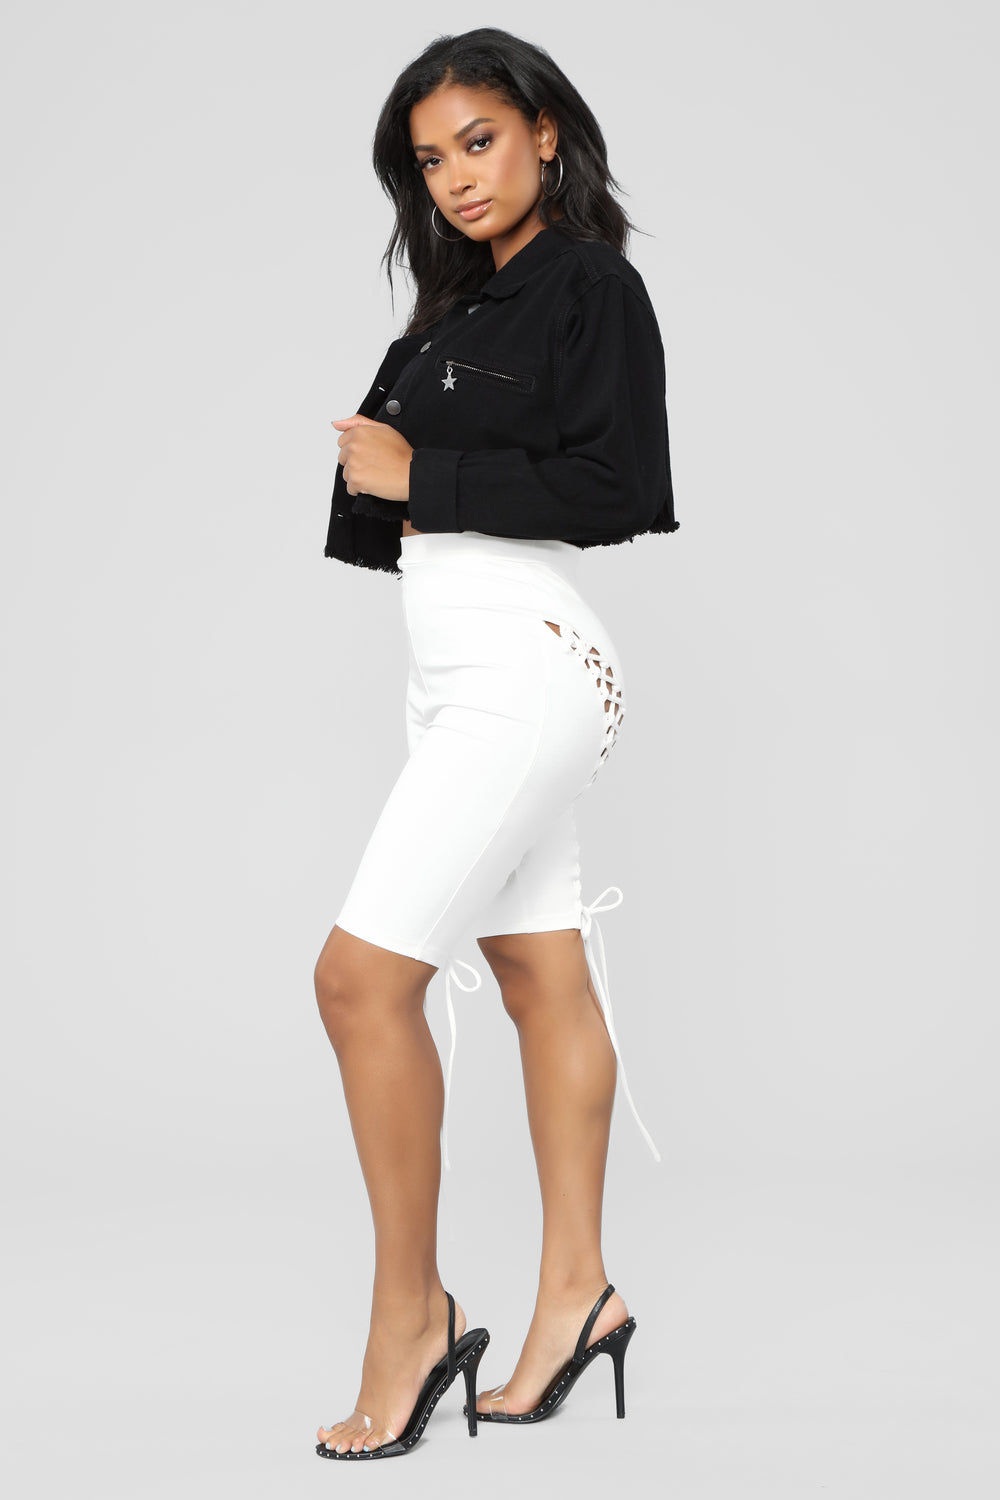 Kecia Lace Up Shorts - White